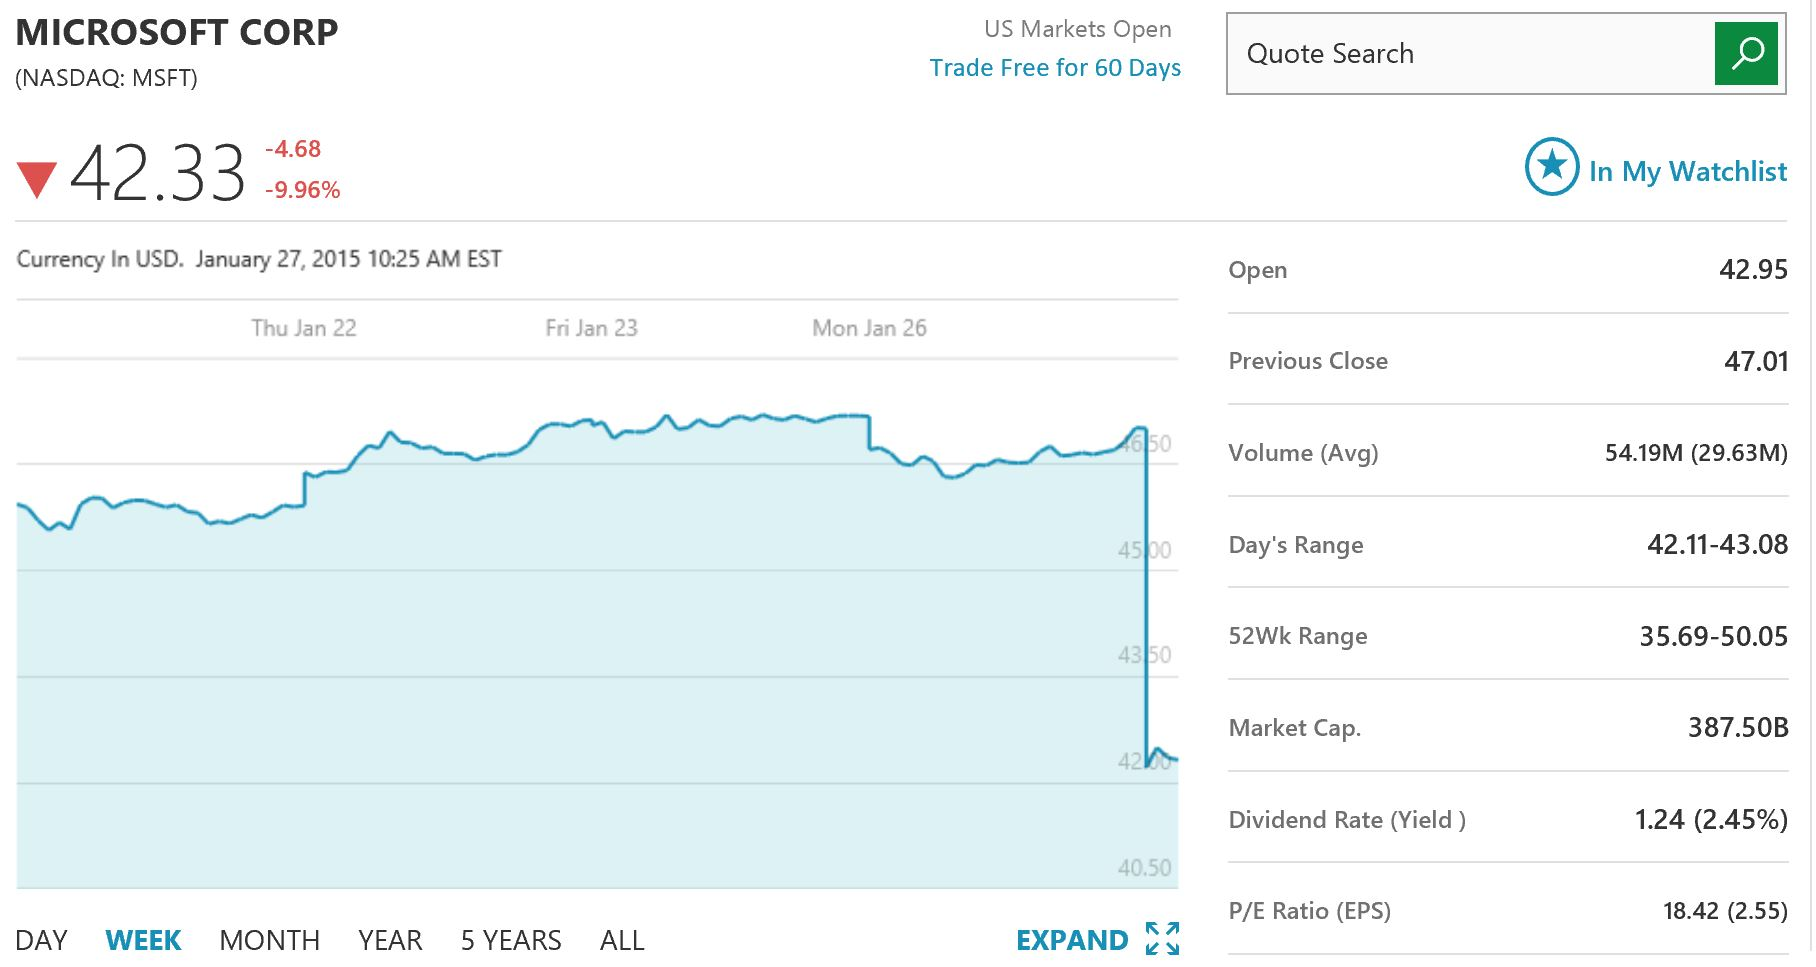 Microsoft Stock Value Q2 report